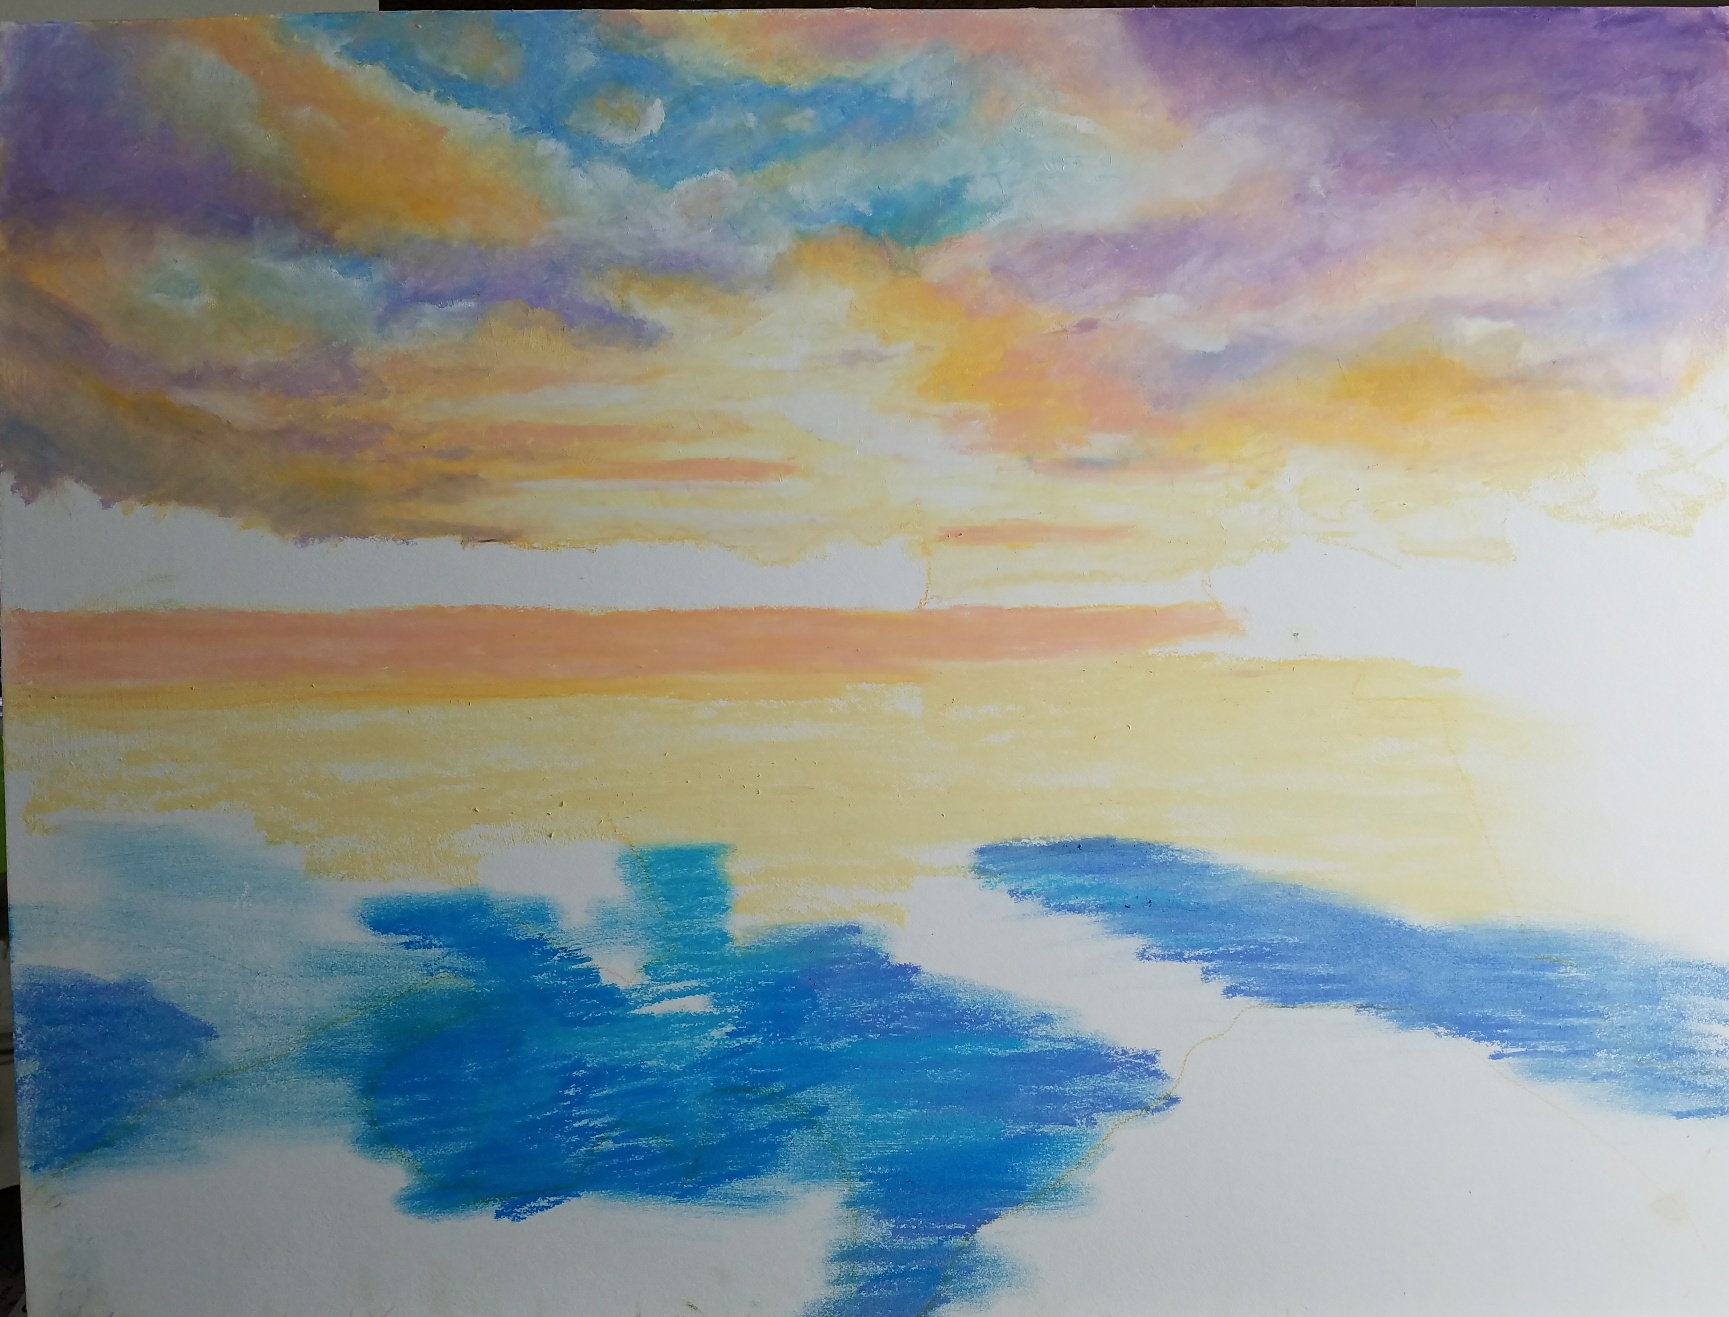 Blocking in the sky. Part of the fun is smushing the pastel around and blending areas.  I use my fingers (I wear gloves) and silicone color shapers for blending. I use Myngyo Gallery pastels for most of the painting, with some of the much softer white Sennelier oil pastel for adding light and blending colors.